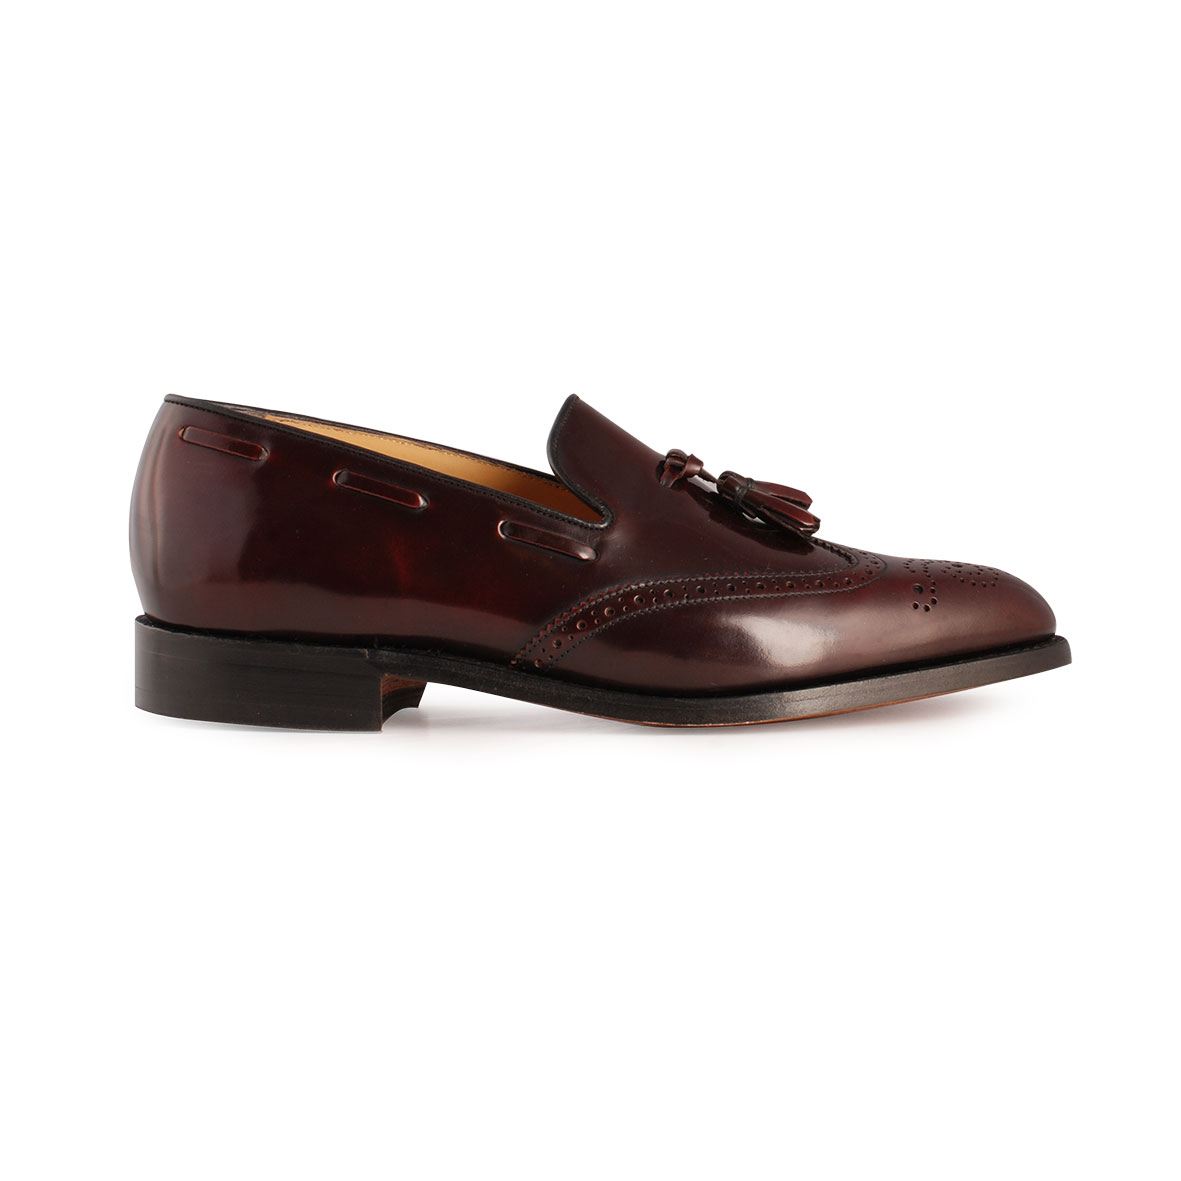 Barker Clive Burgundy shoes